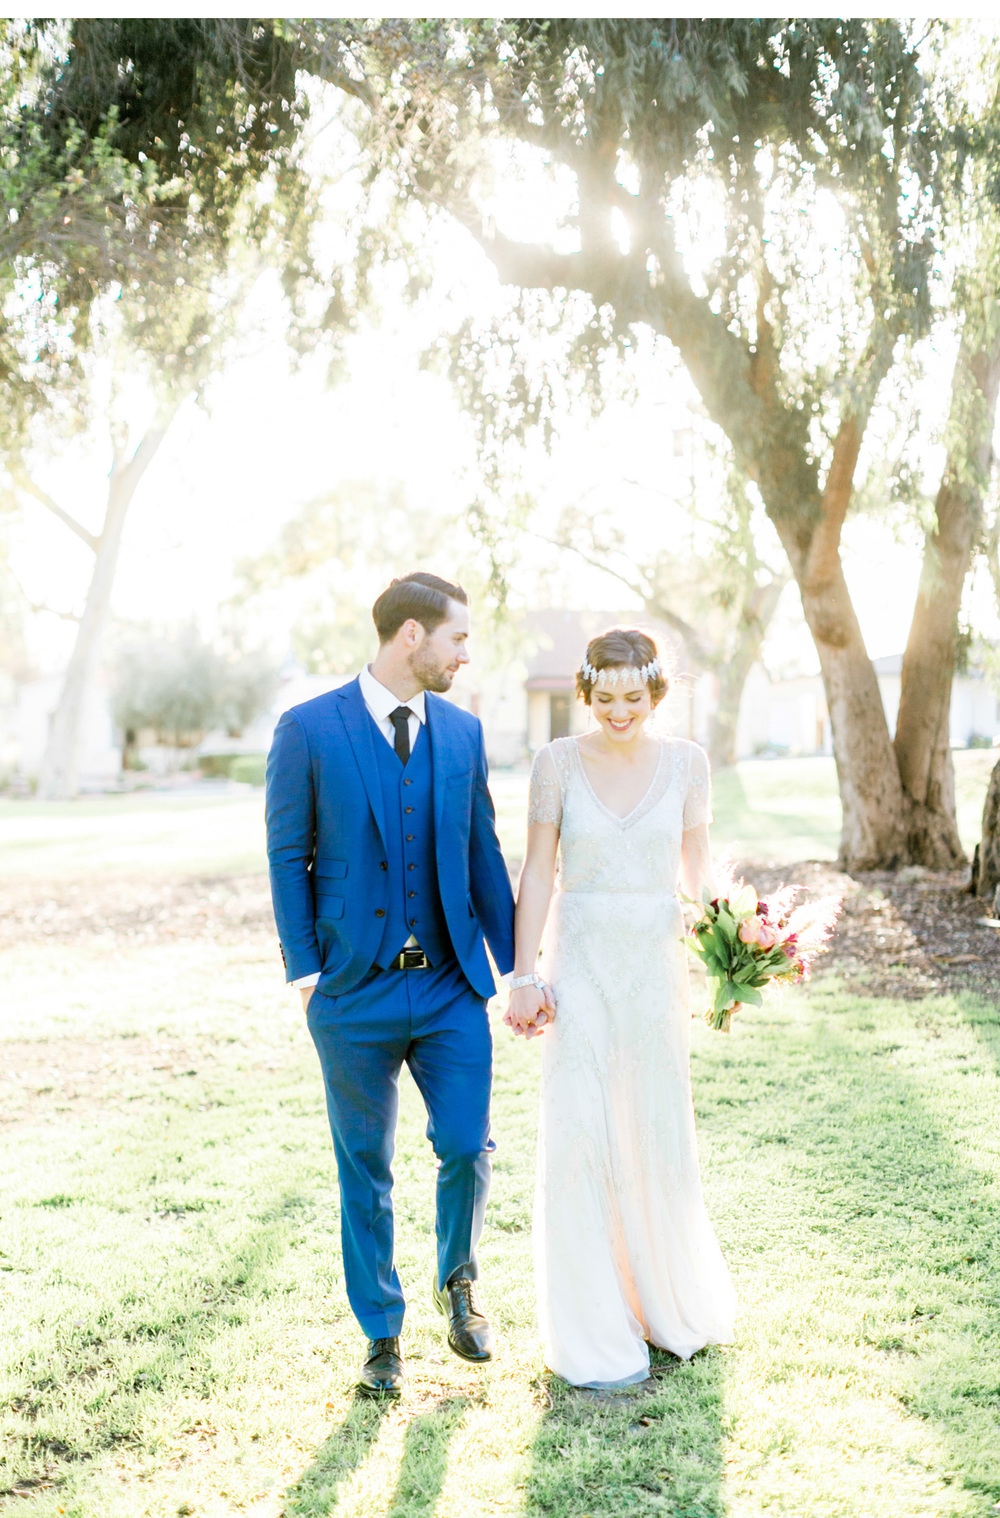 Santa-Barbara-Wedding-Photographer-Natalie-Schutt-Photography_03.jpg